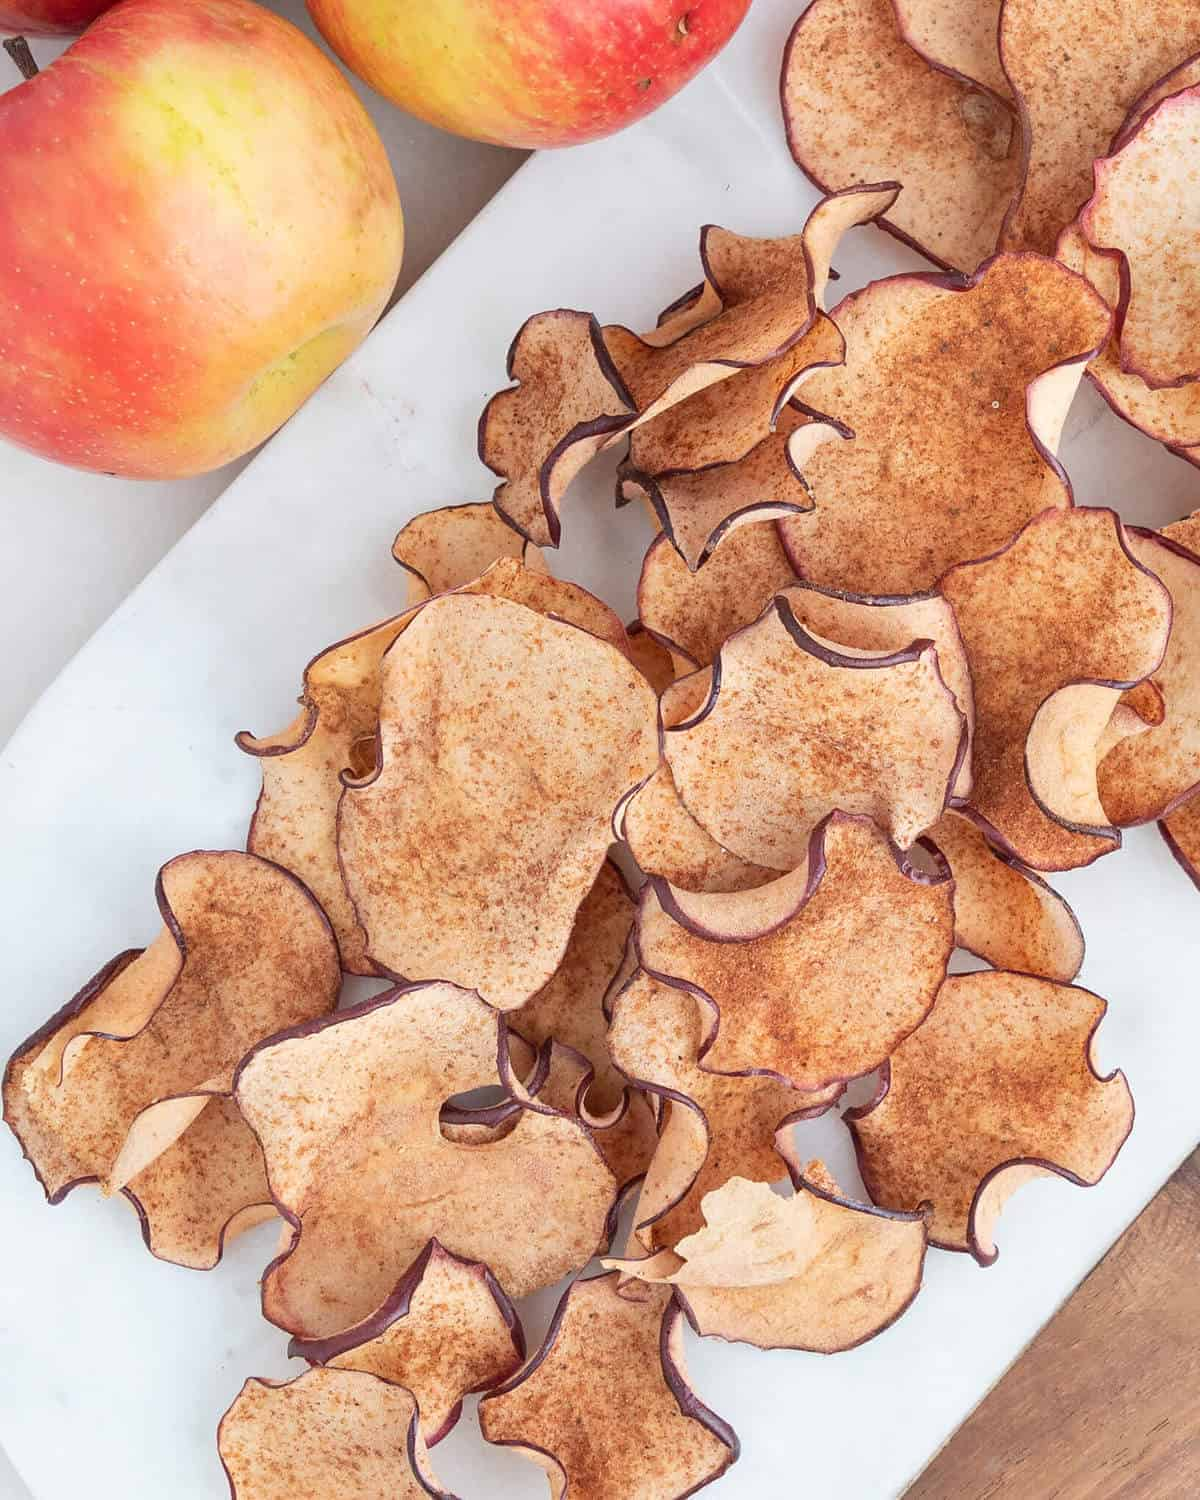 several crispy apple chips on a white platter with apples in the background